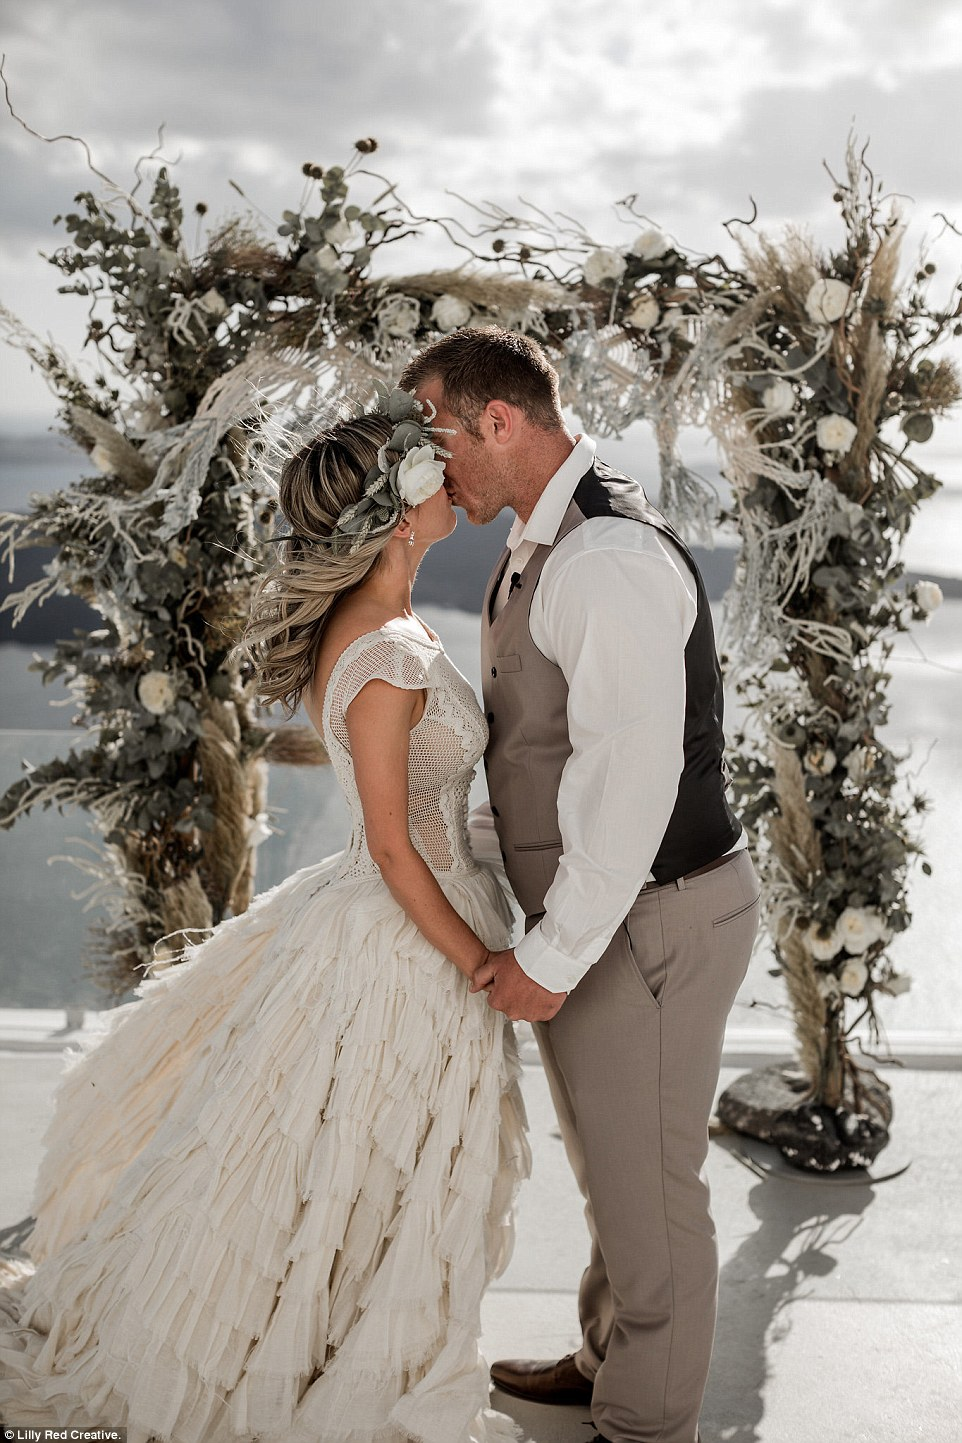 Nicole and Michael Clayworth (pictured), from Port Macquarie, decided to abandon a big white wedding at home in Australia, and instead elope to Santorini to tie the knot while backpacking